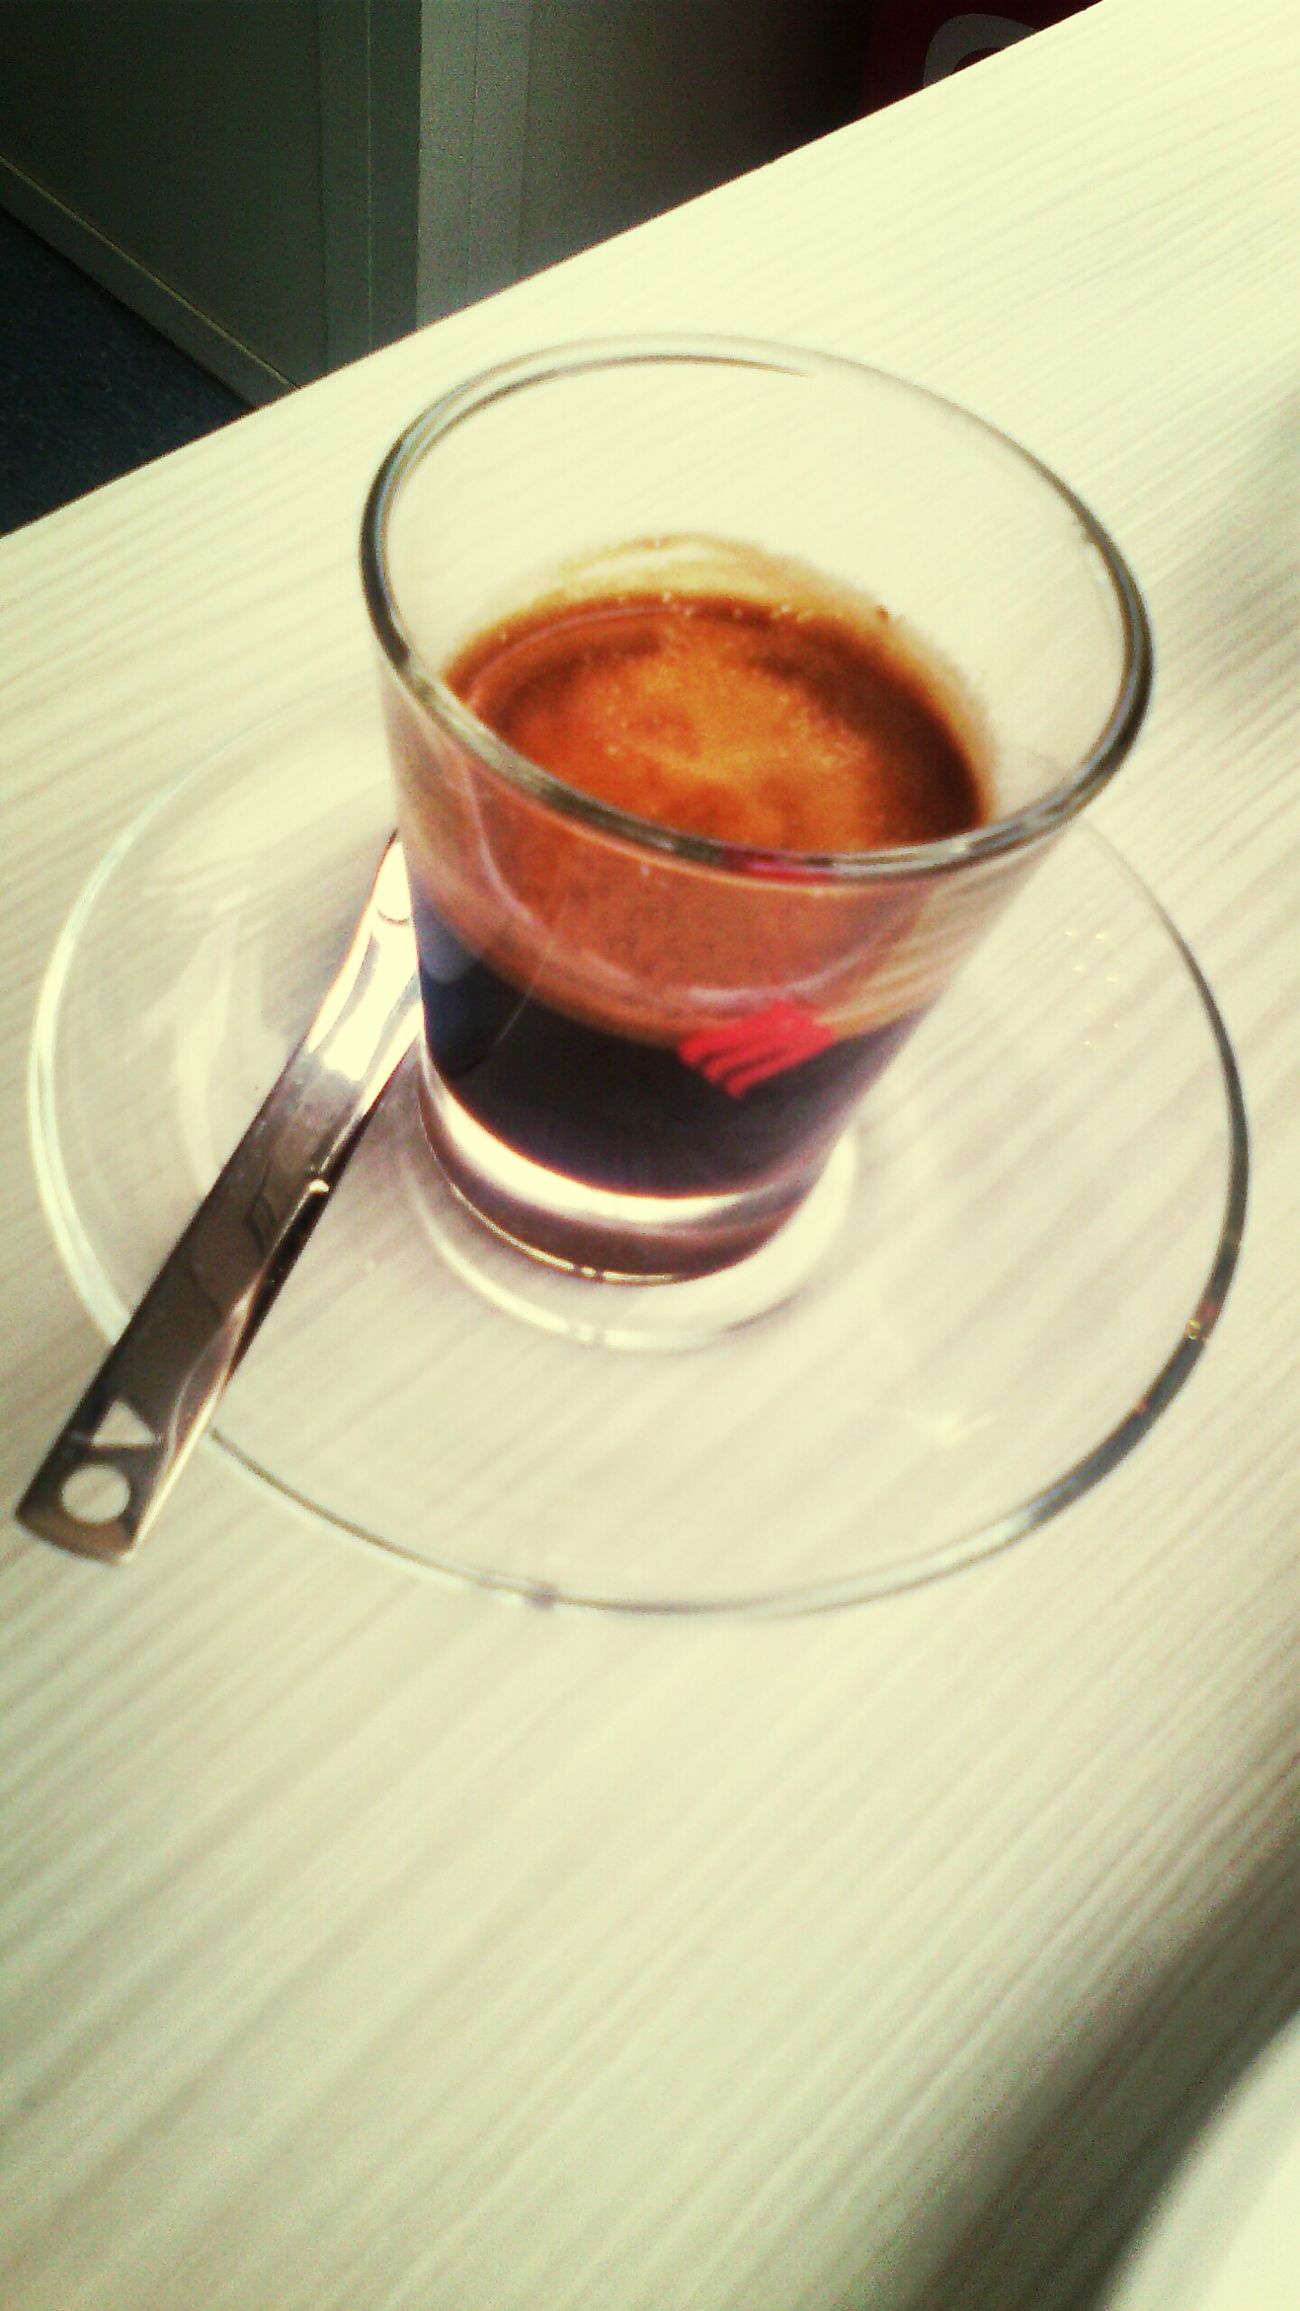 Strong Coffee Espresso Meeting Friends